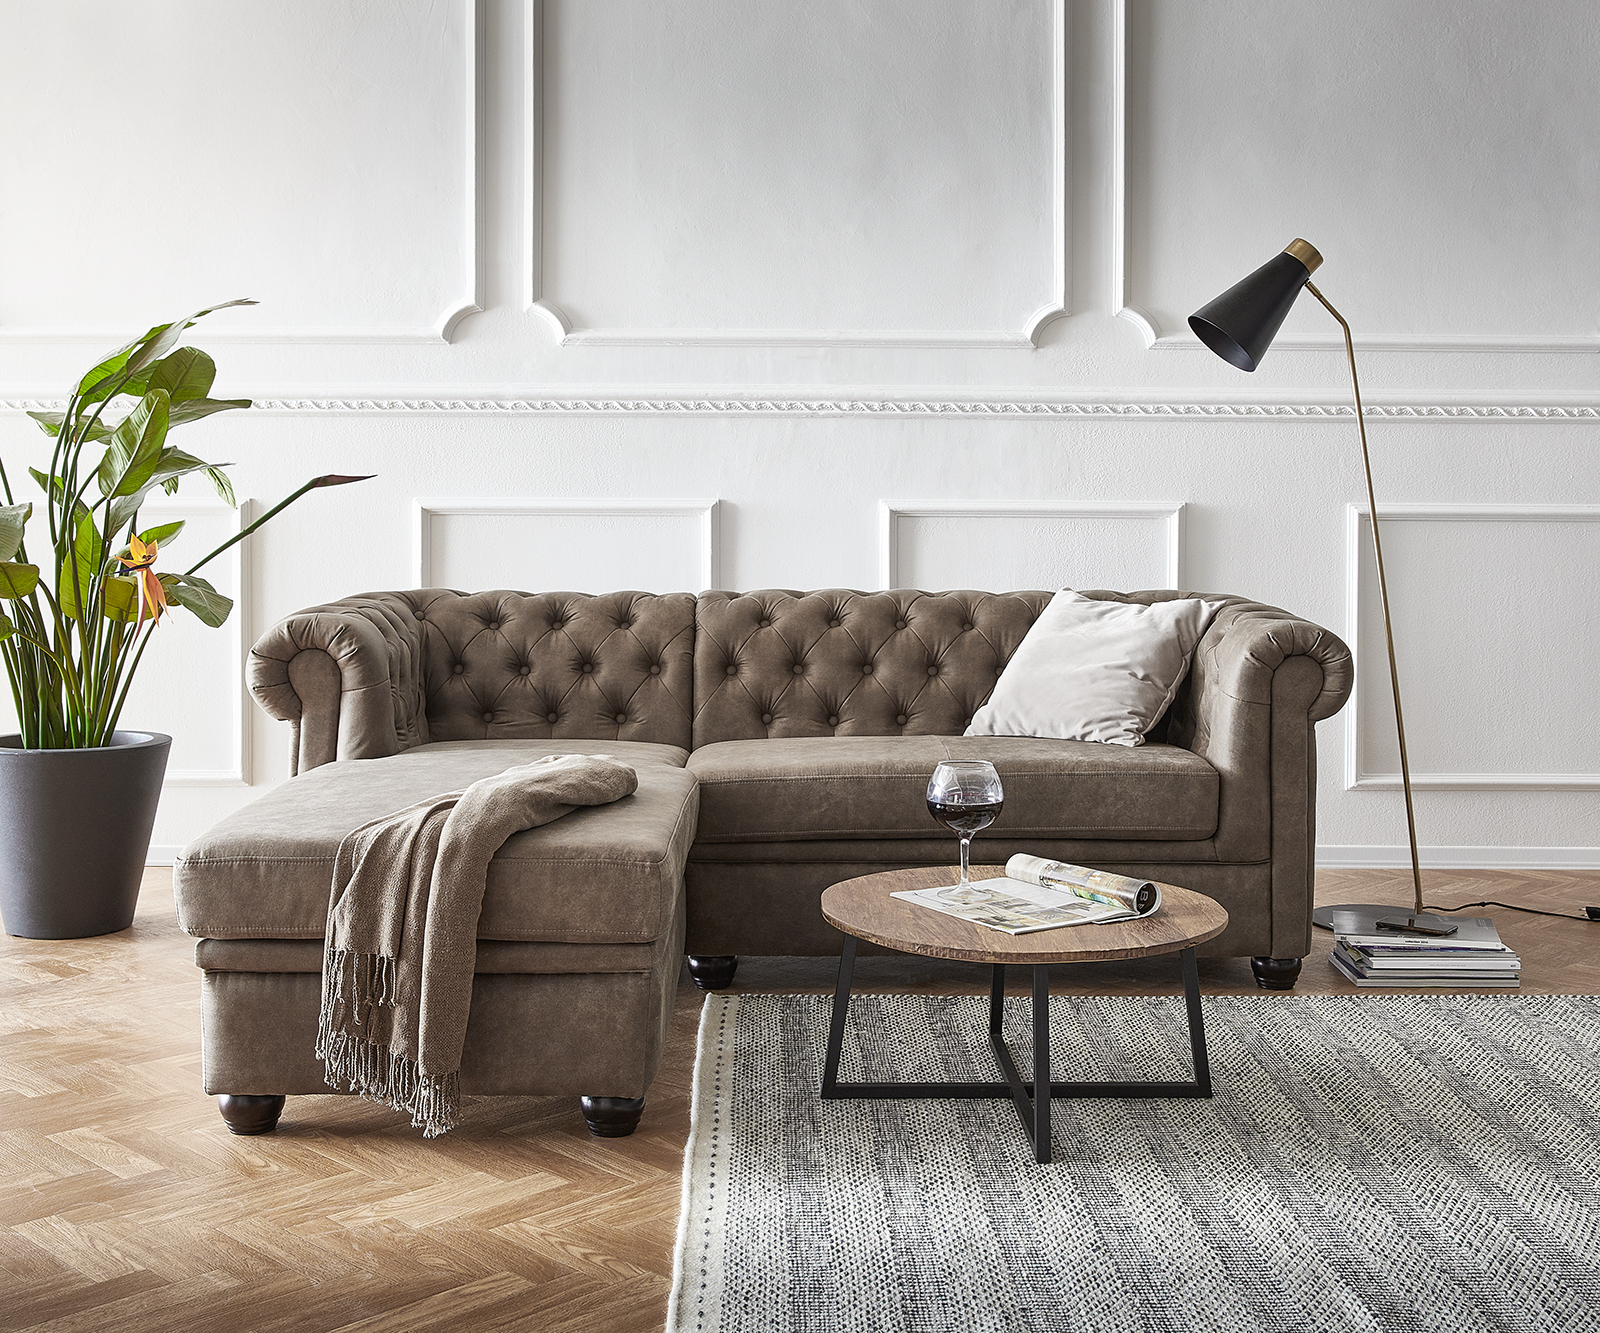 delife-sofa-chesterfield-200x88-cm-taupe-abgesteppt-ottomane-links-chesterfields